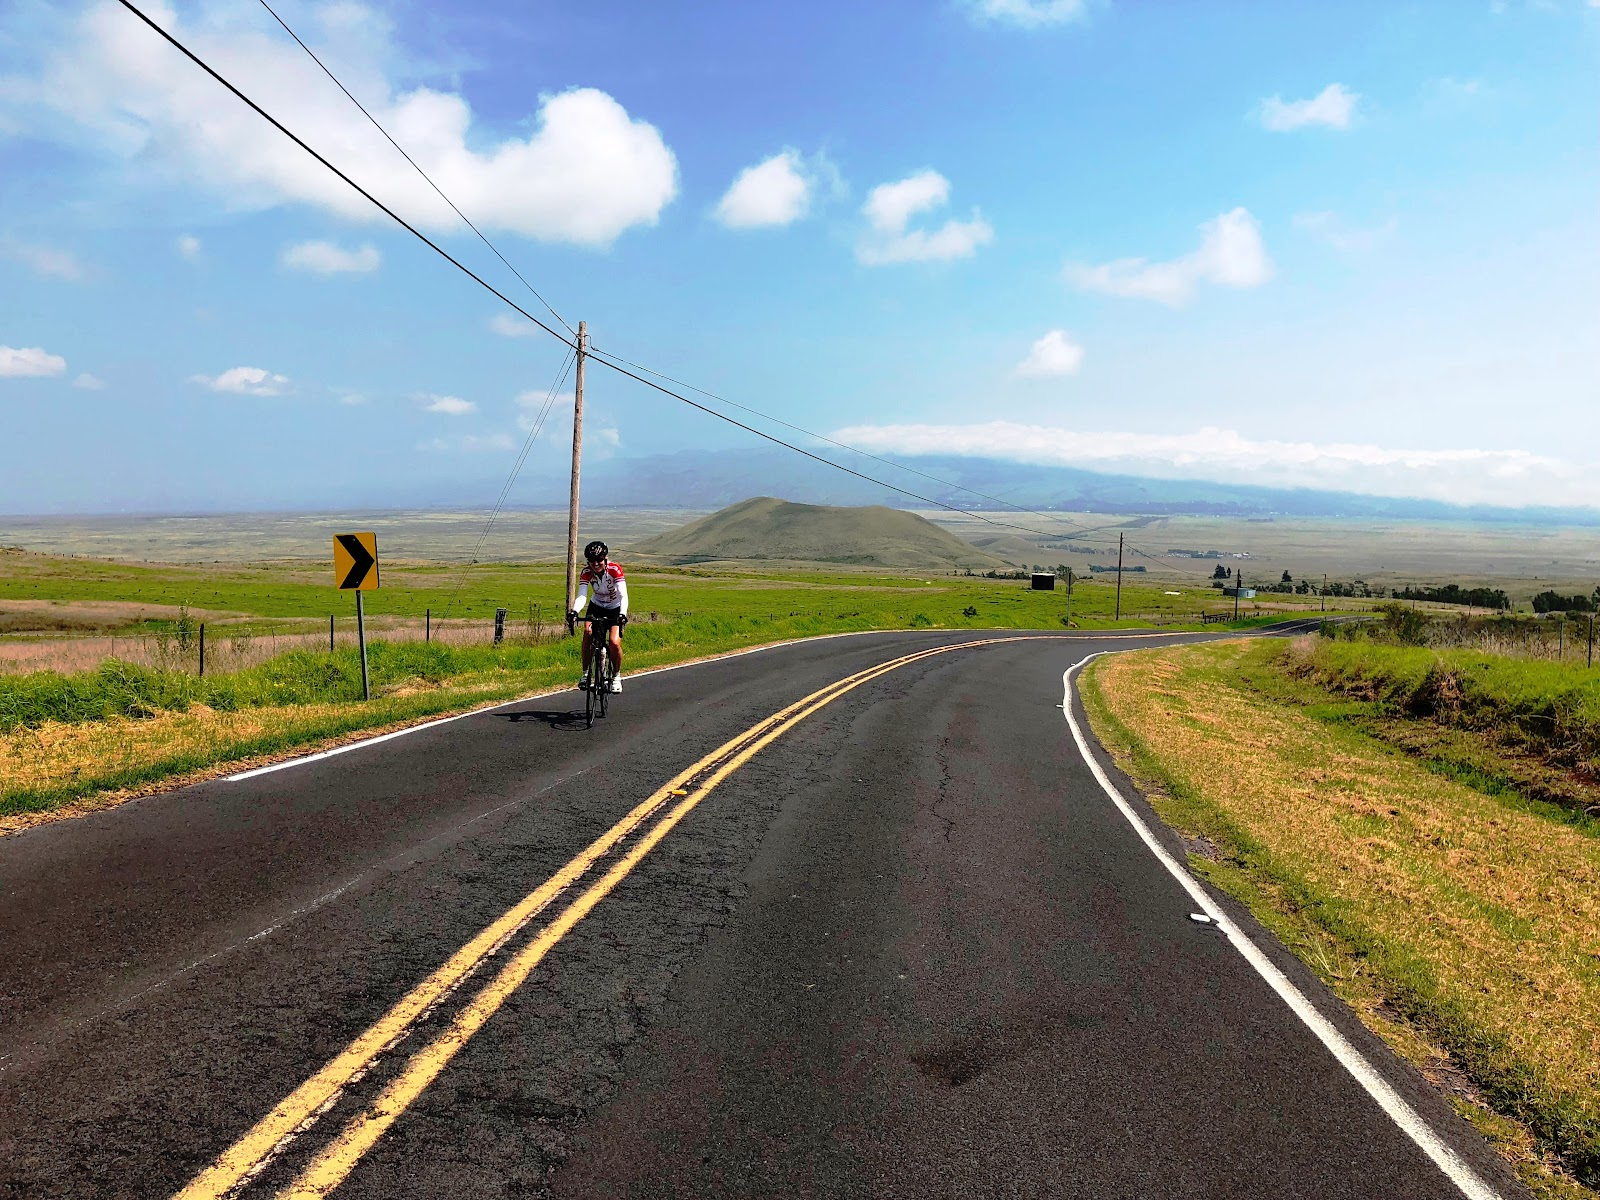 Cimbing Mauna Loa Volcano by bike - cyclists on old saddle road with cinder cone in background